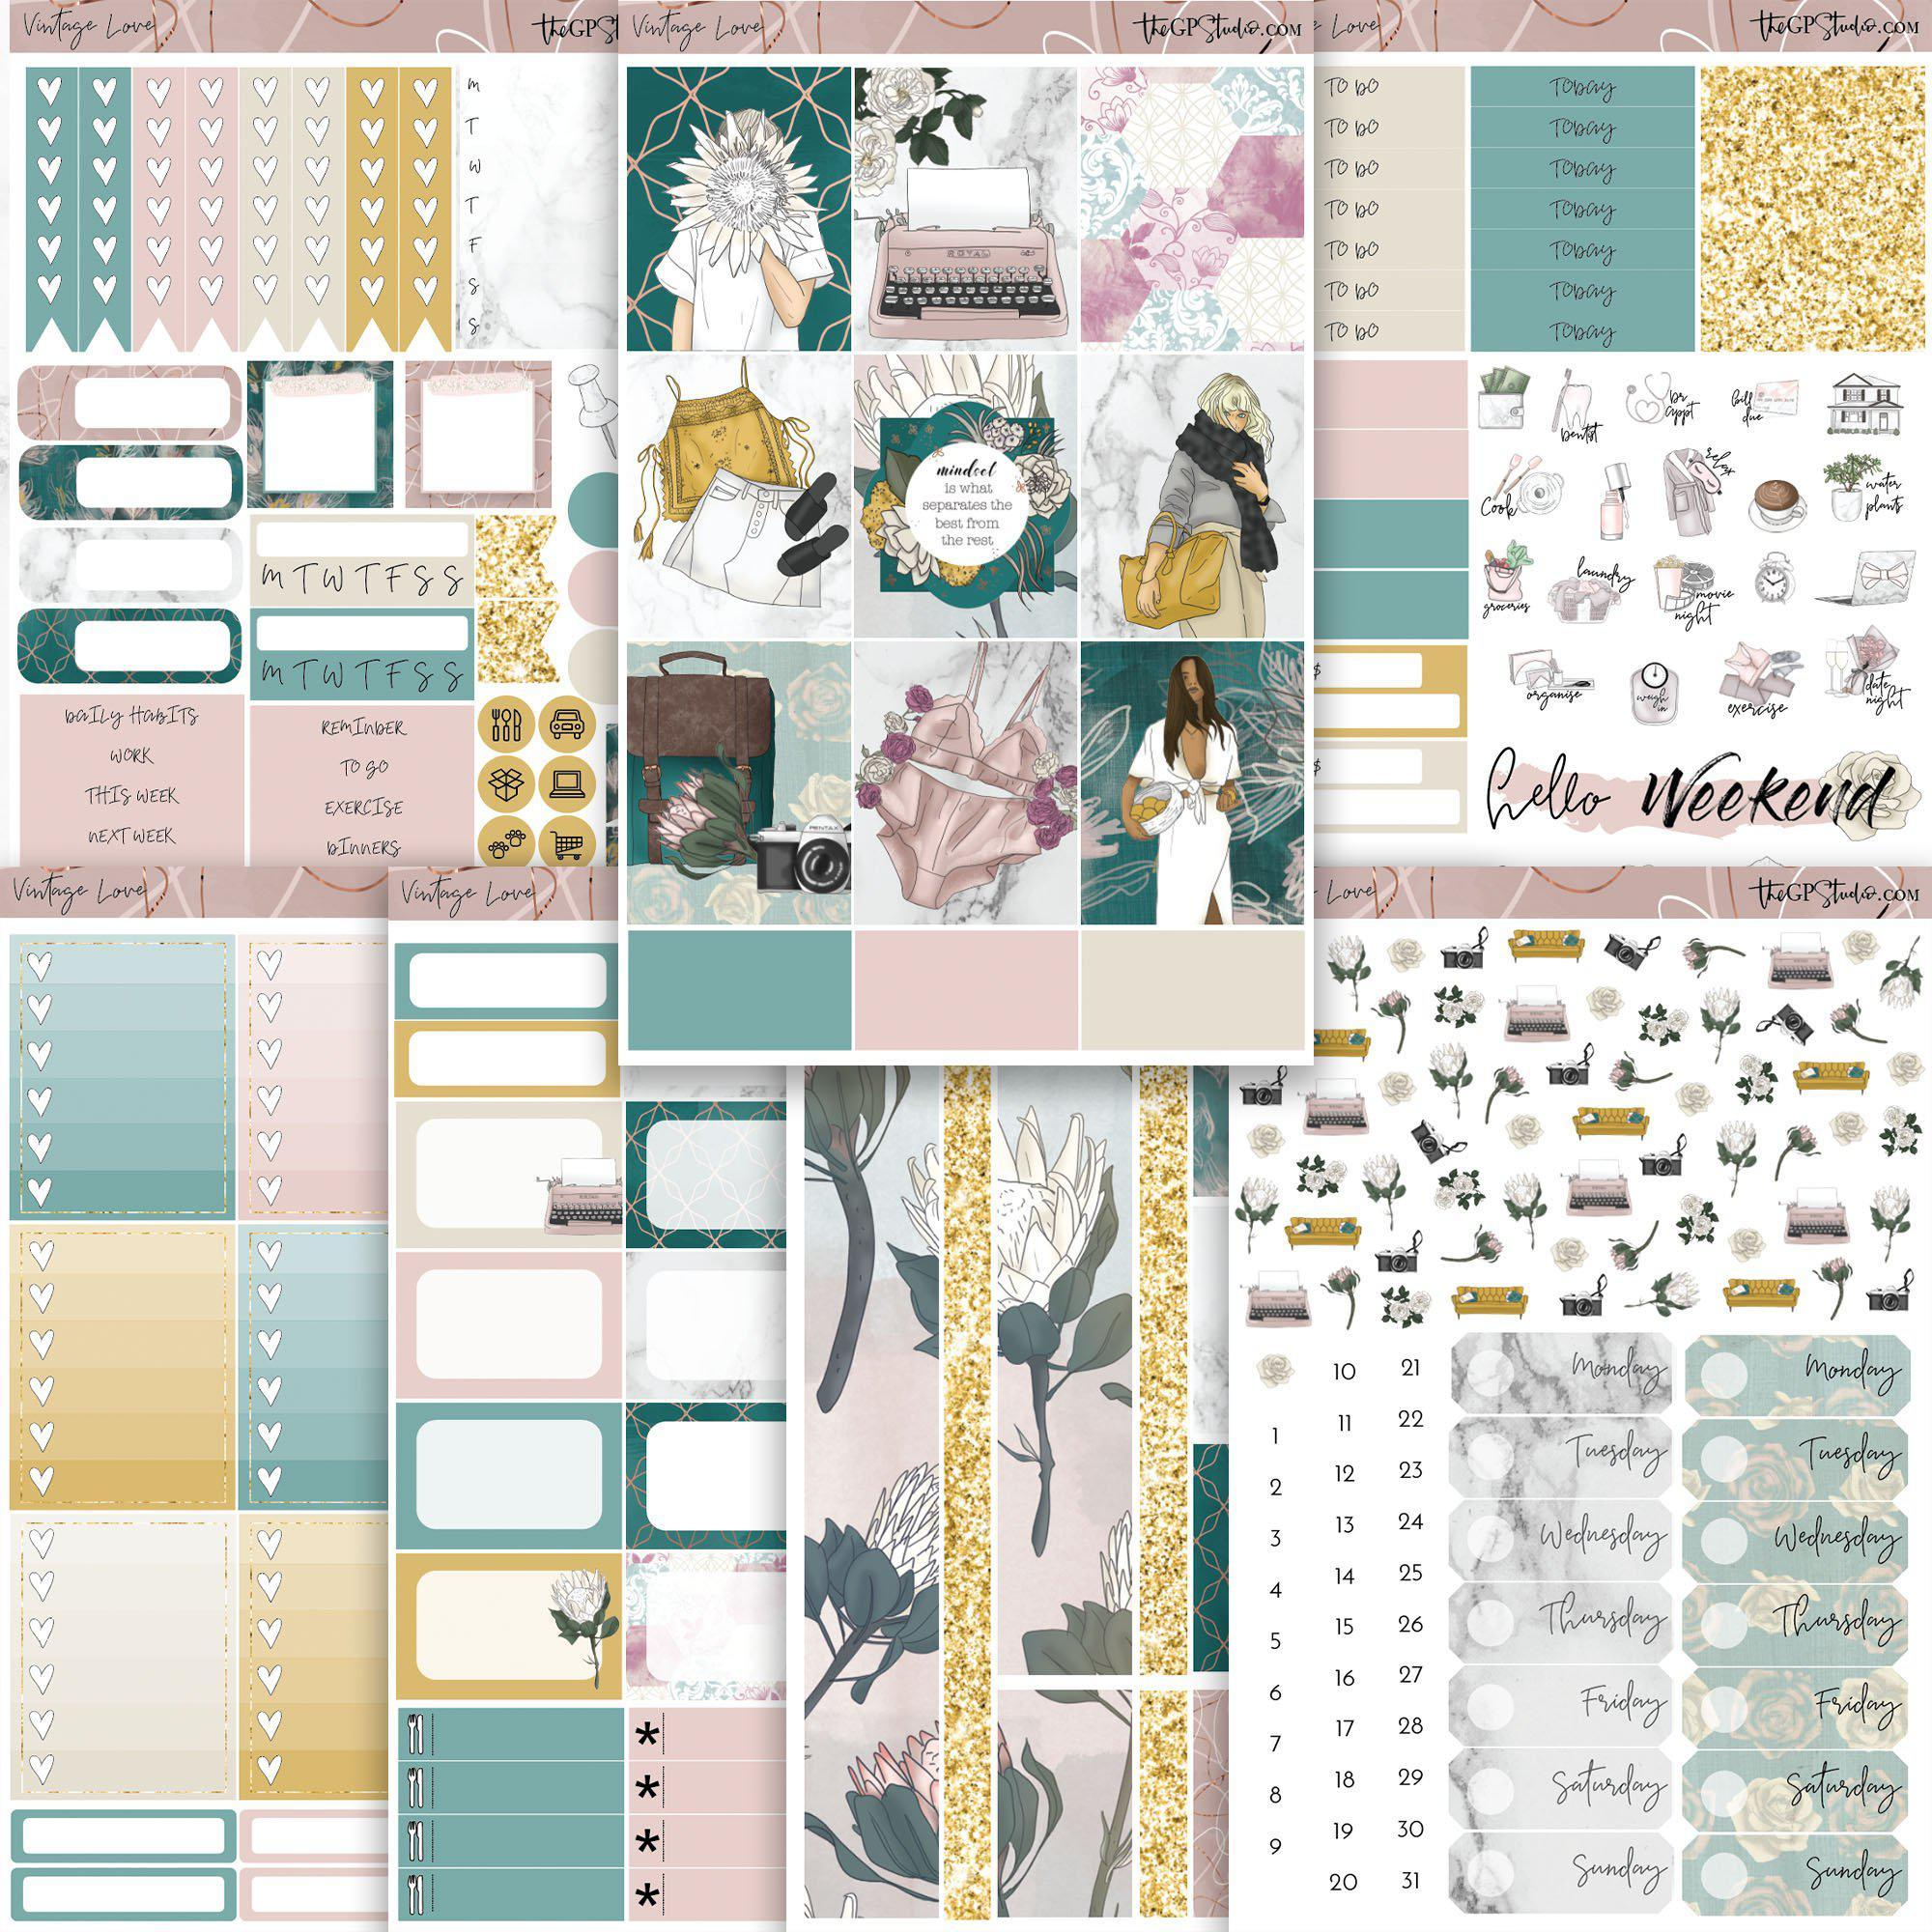 VINTAGE LOVE Planner Sticker Kit-The GP Studio